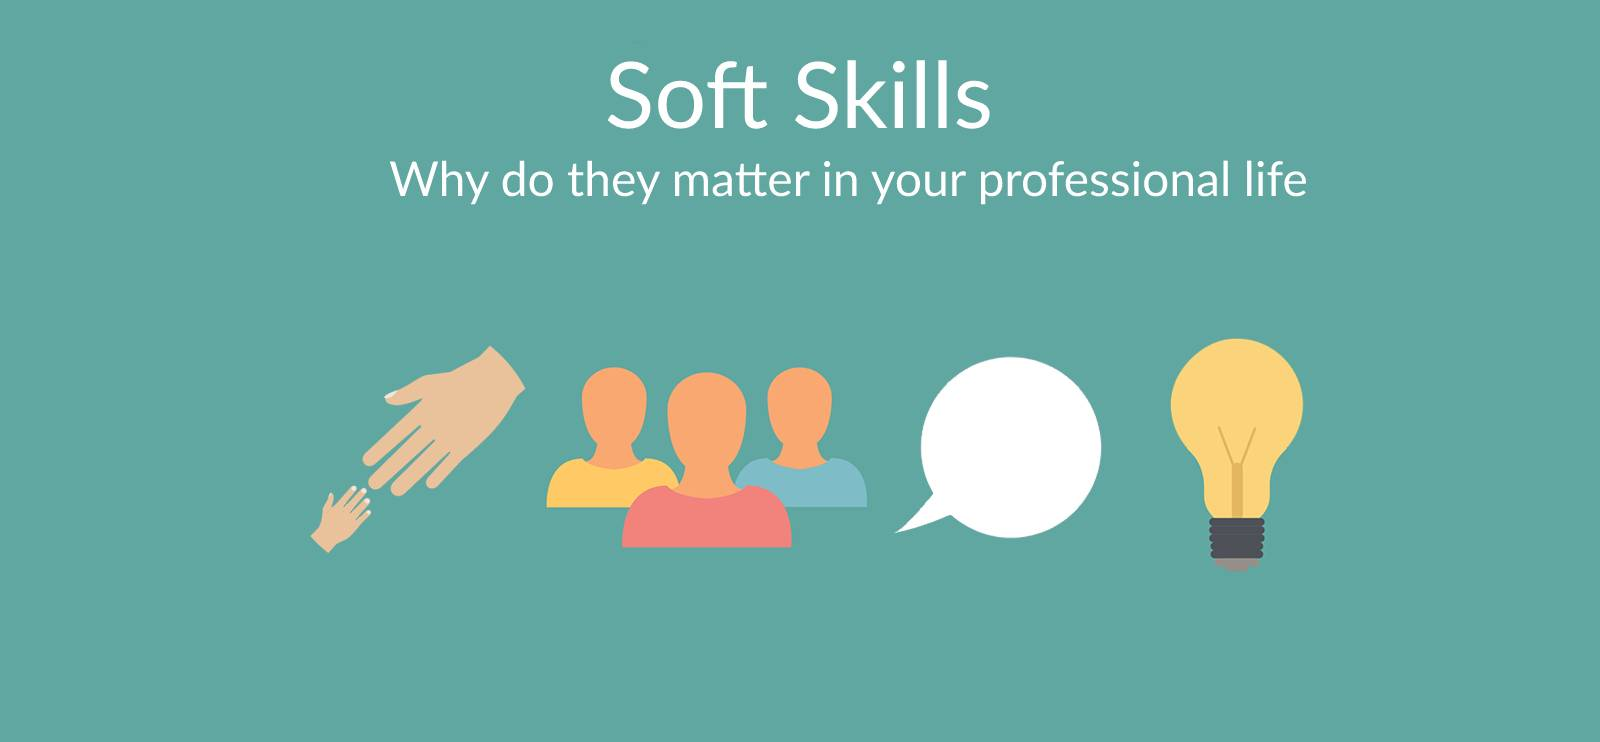 Soft Skills. Why do they matter in your professional life. - ChallengeMe